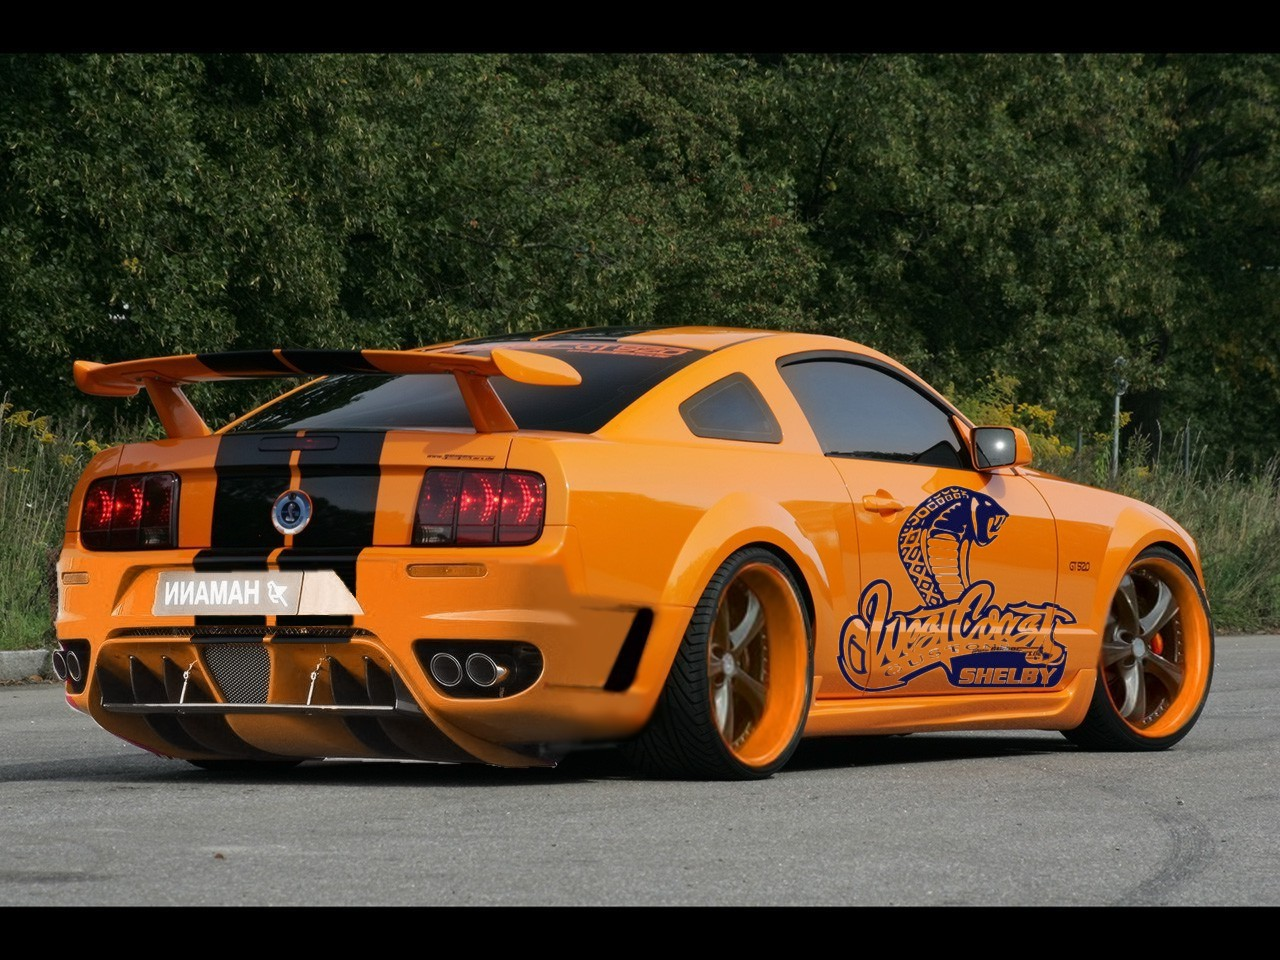 Ford mustang tuning 2013 mustang pictures - Mustang modification ...